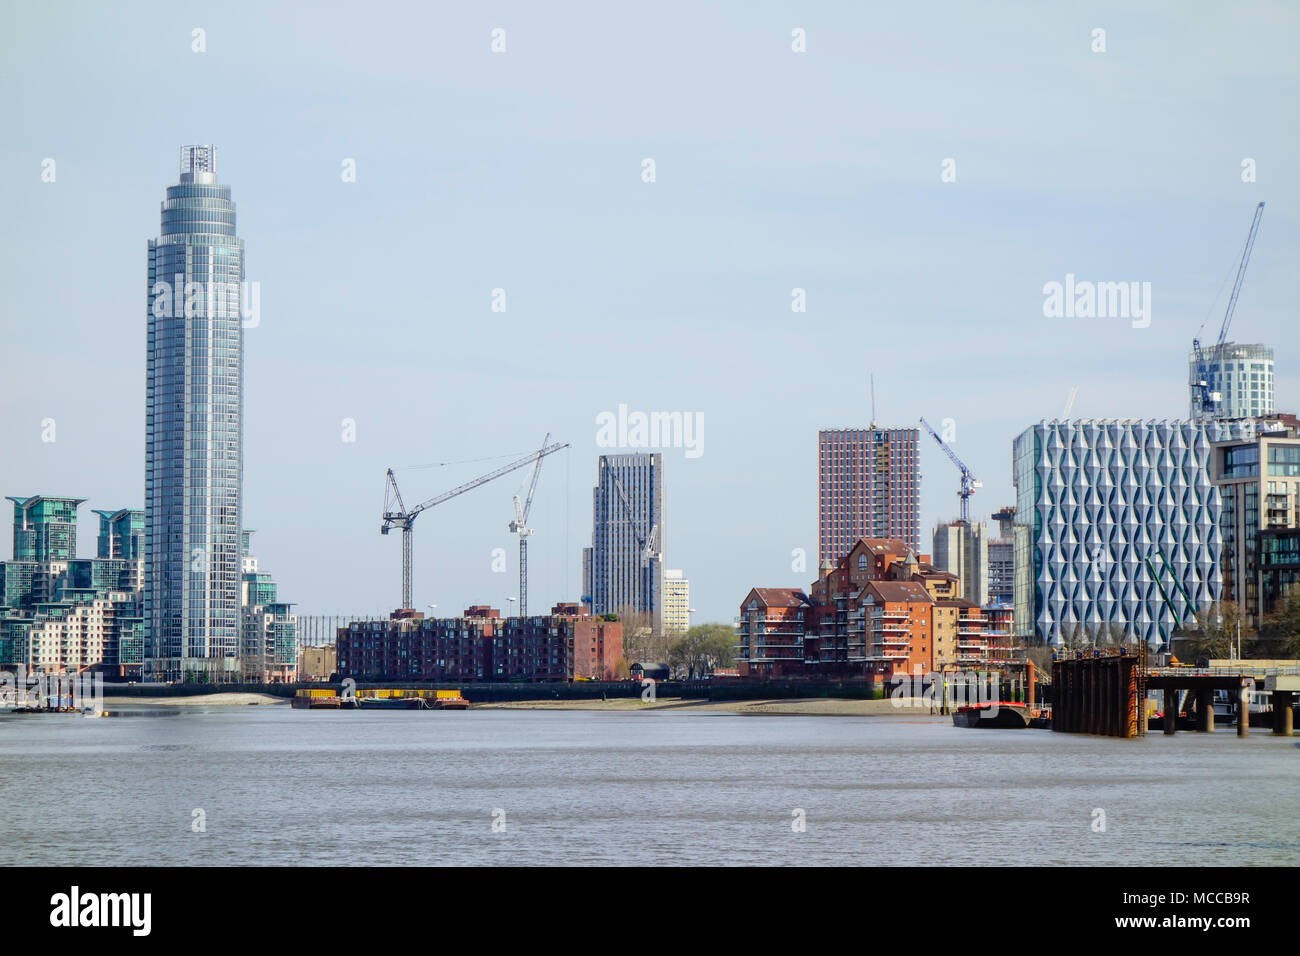 The New US Embassy Building at Nine Elms and construction, Vauxhall, London. - Stock Image